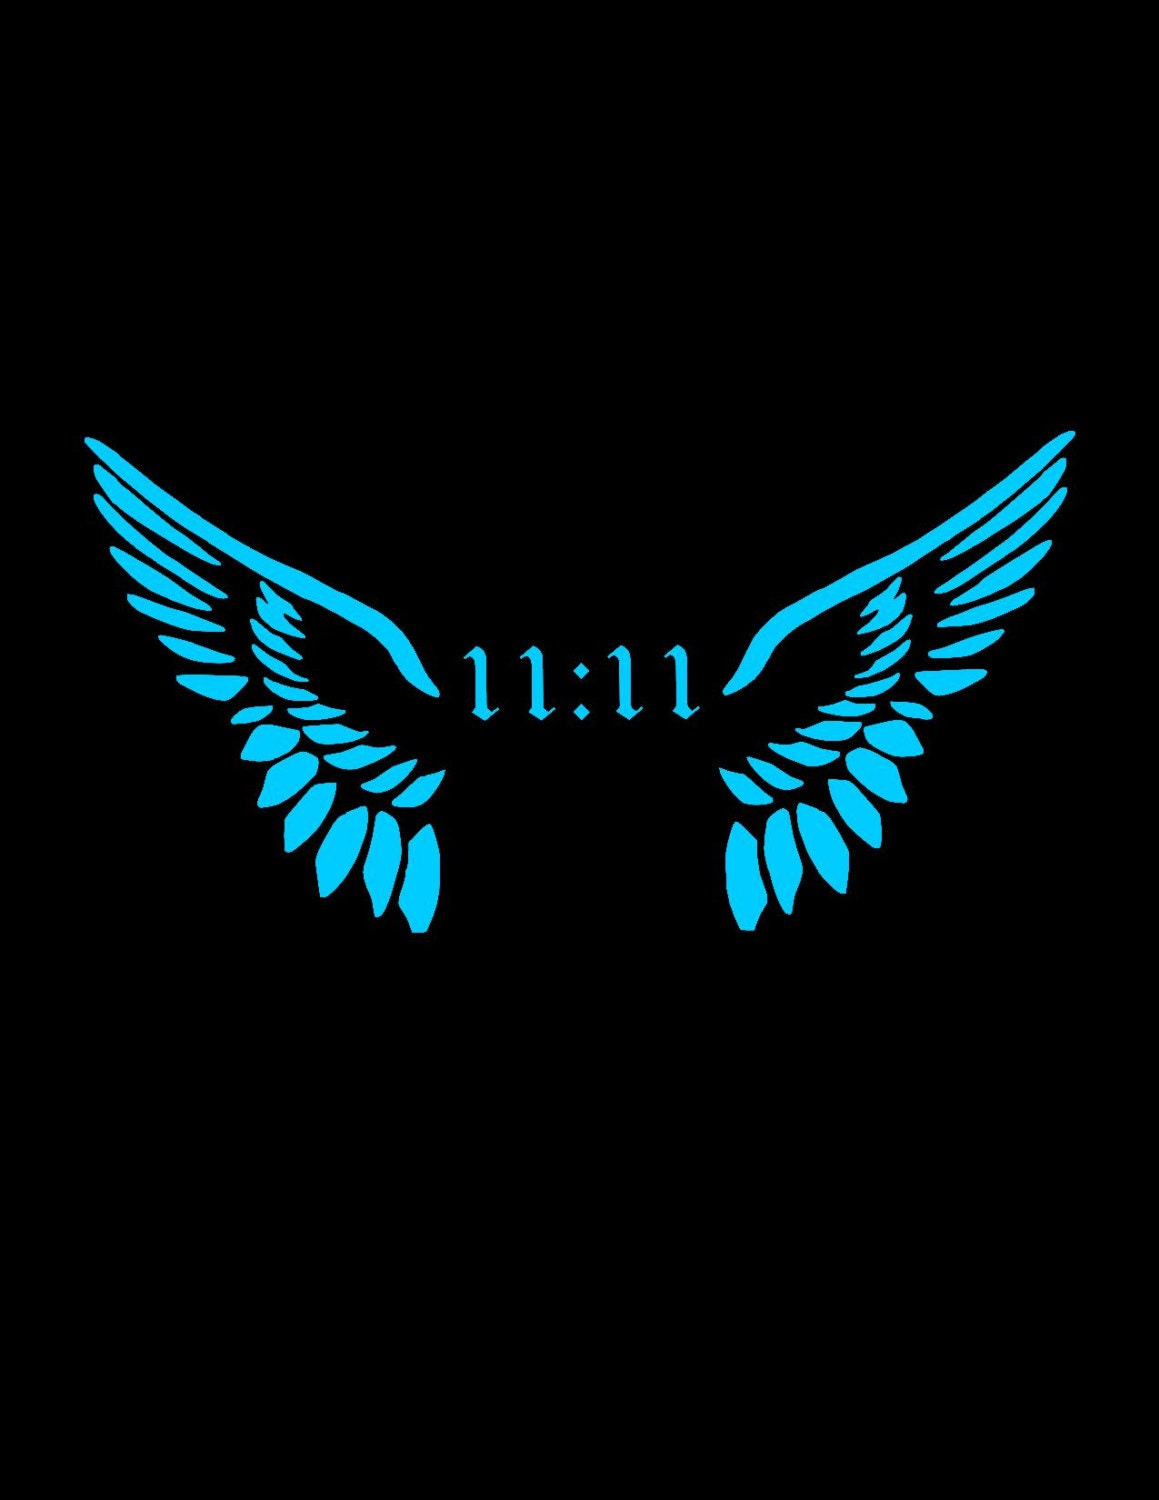 Free Shipping1111 Angel Wing Car Decal Angel Wings Car